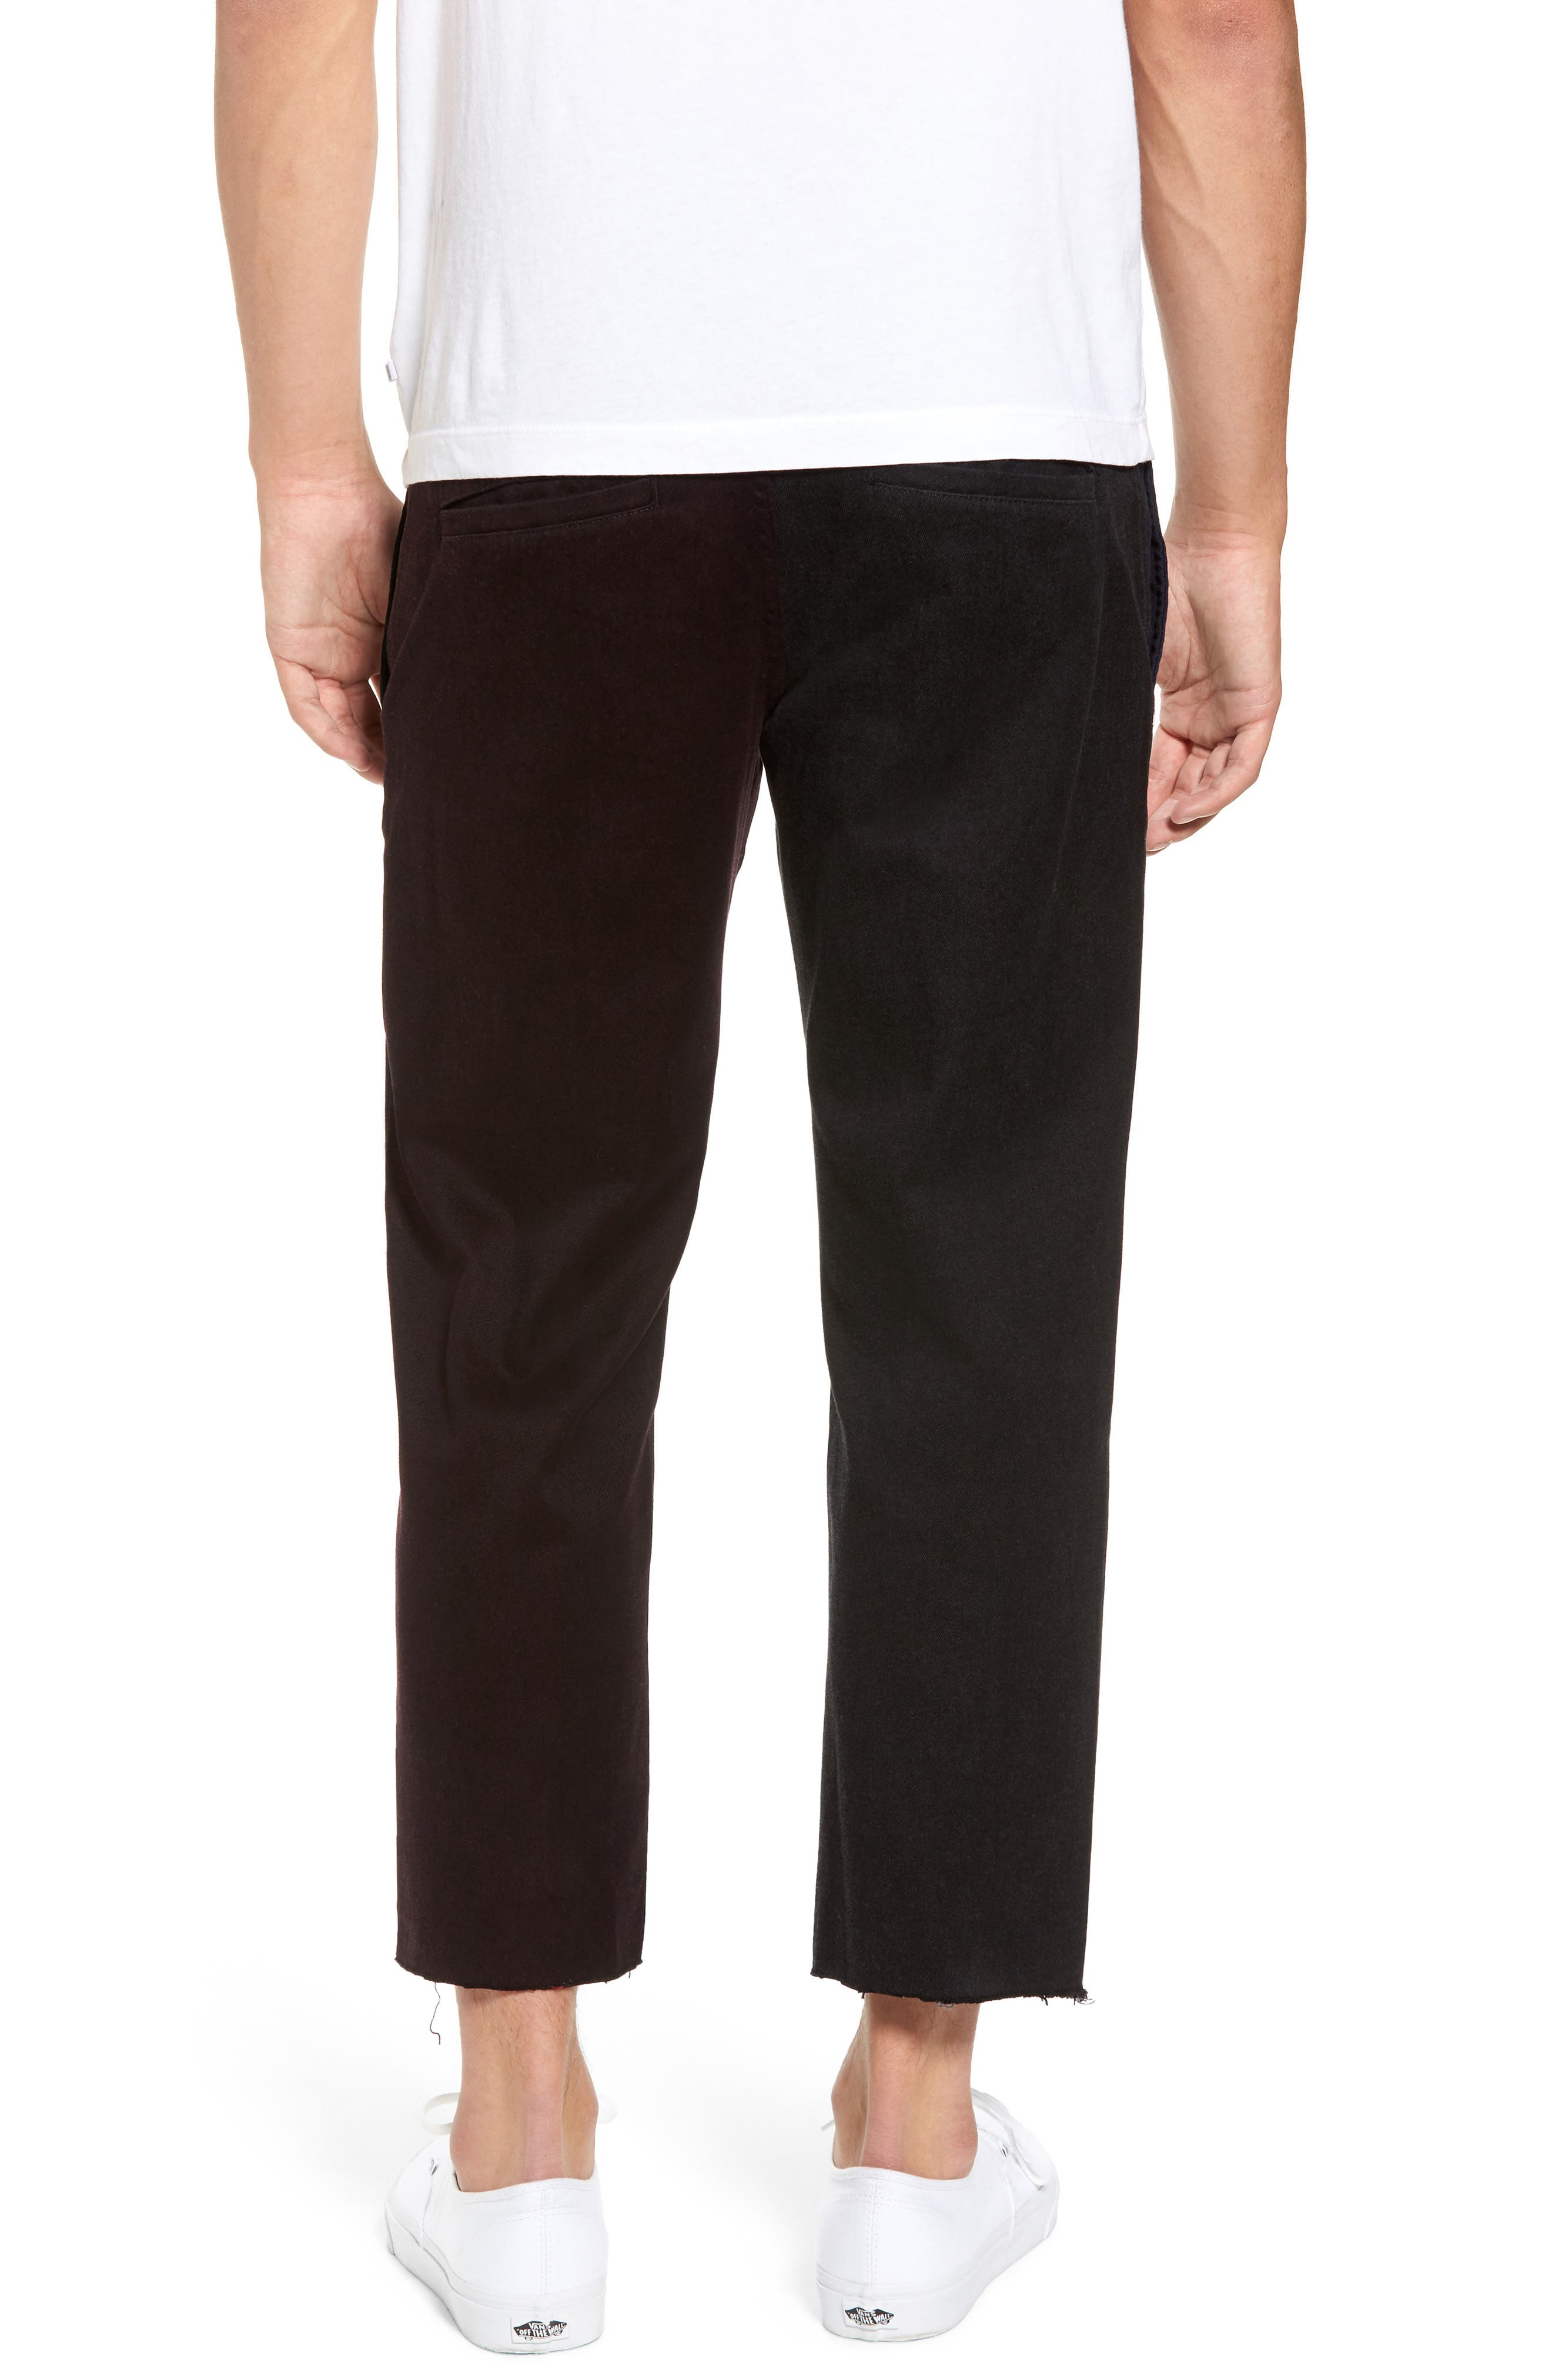 Chodus Crop Boxy Fit Chinos,                             Alternate thumbnail 2, color,                             001